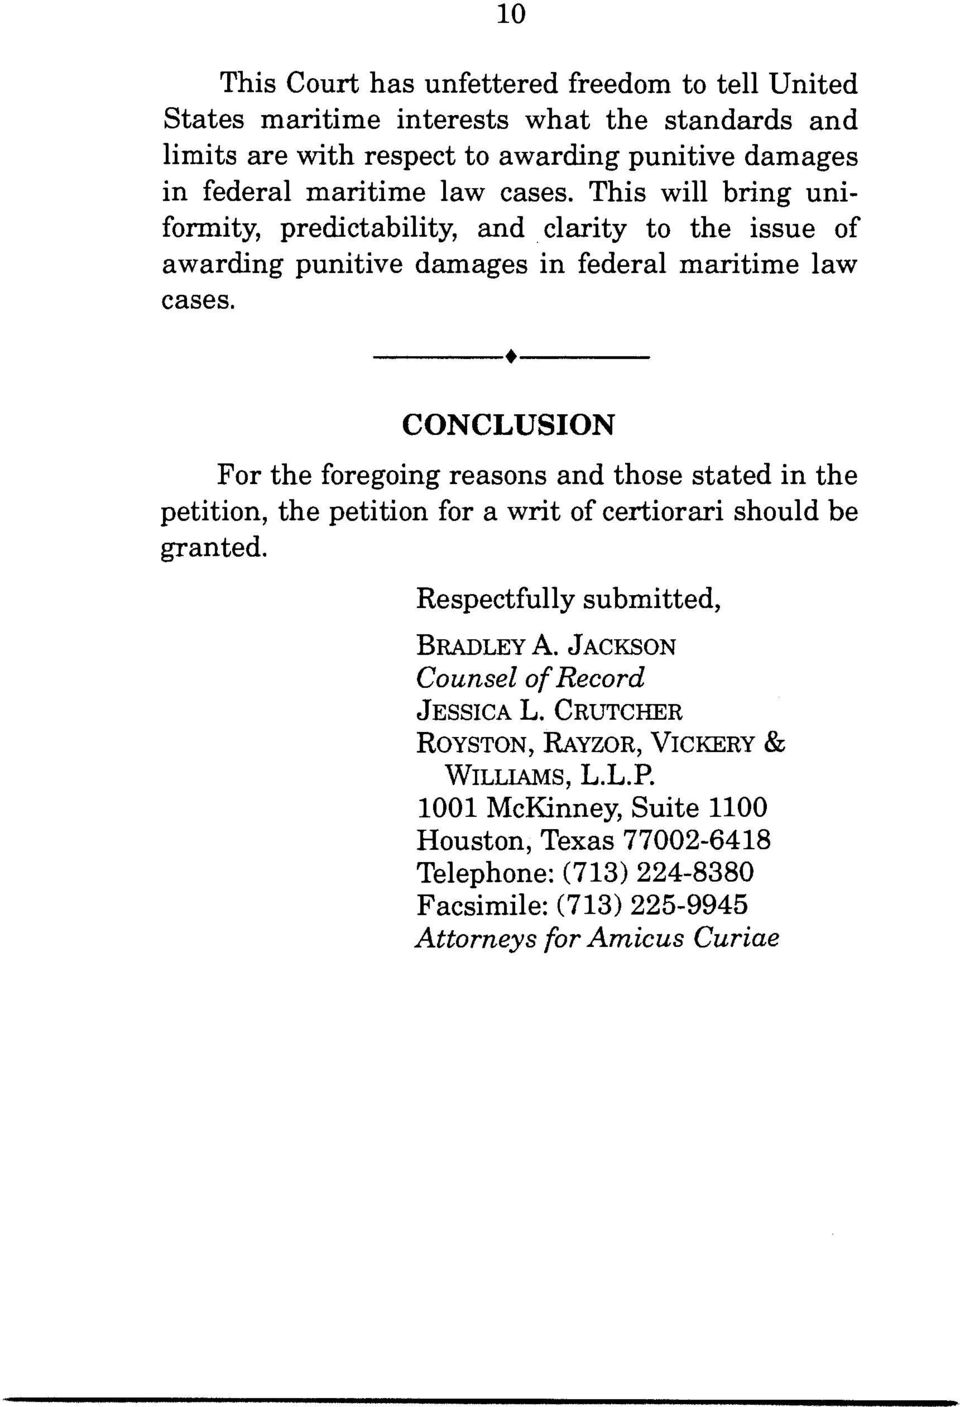 CONCLUSION For the foregoing reasons and those stated in the petition, the petition for a writ of certiorari should be granted. Respectfully submitted, BRADLEY A.